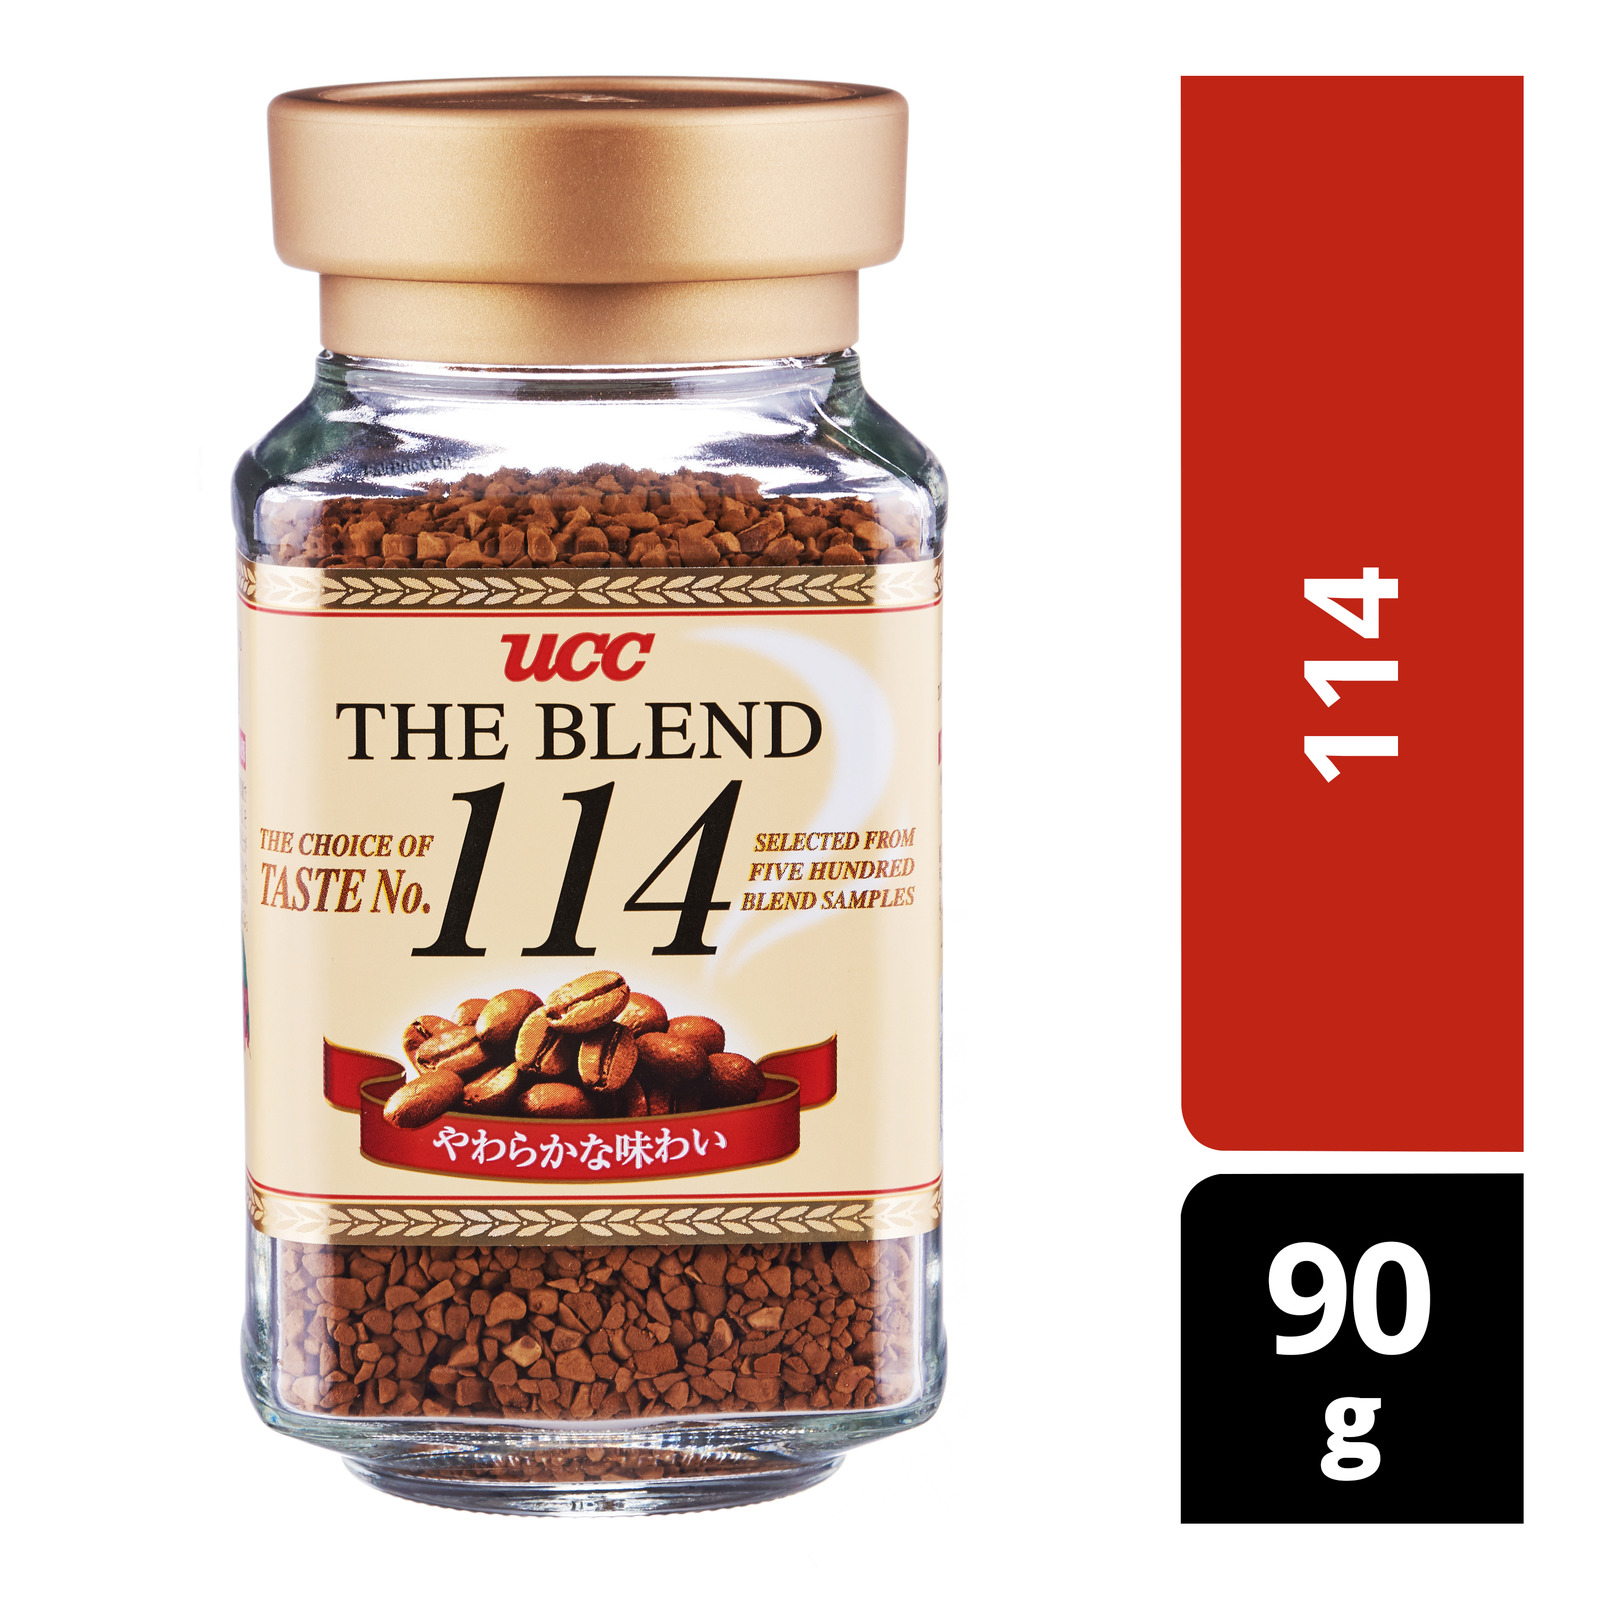 UCC The Blend Instant Coffee Powder - 114